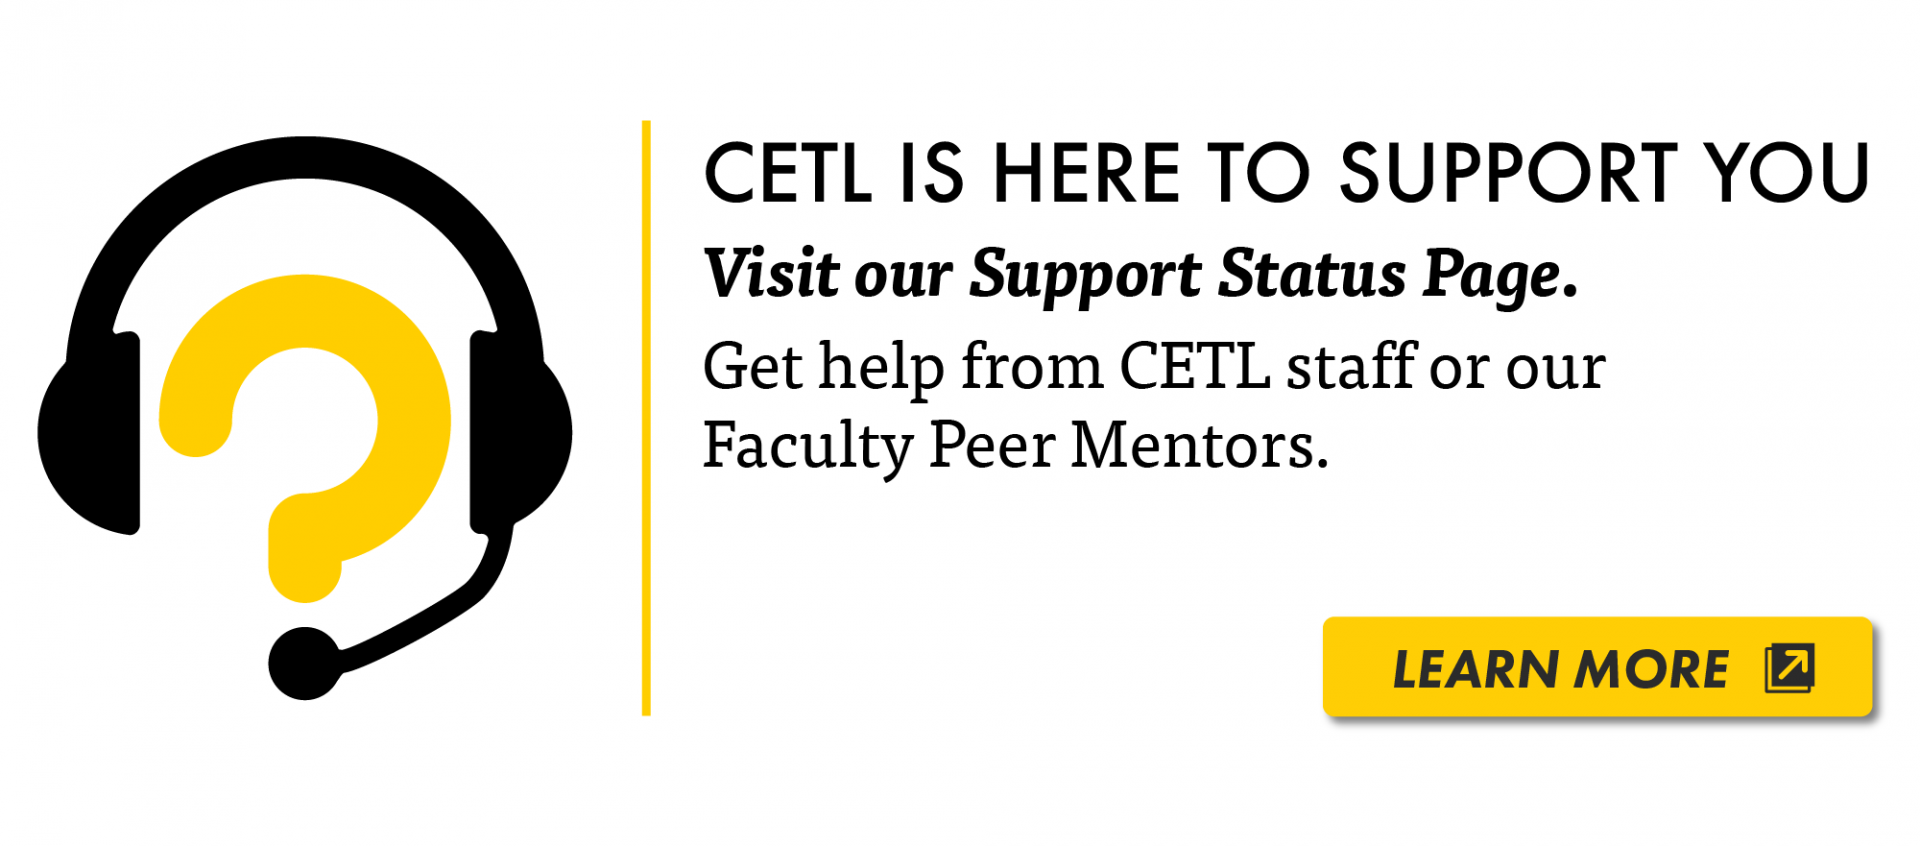 CETL is here for you.